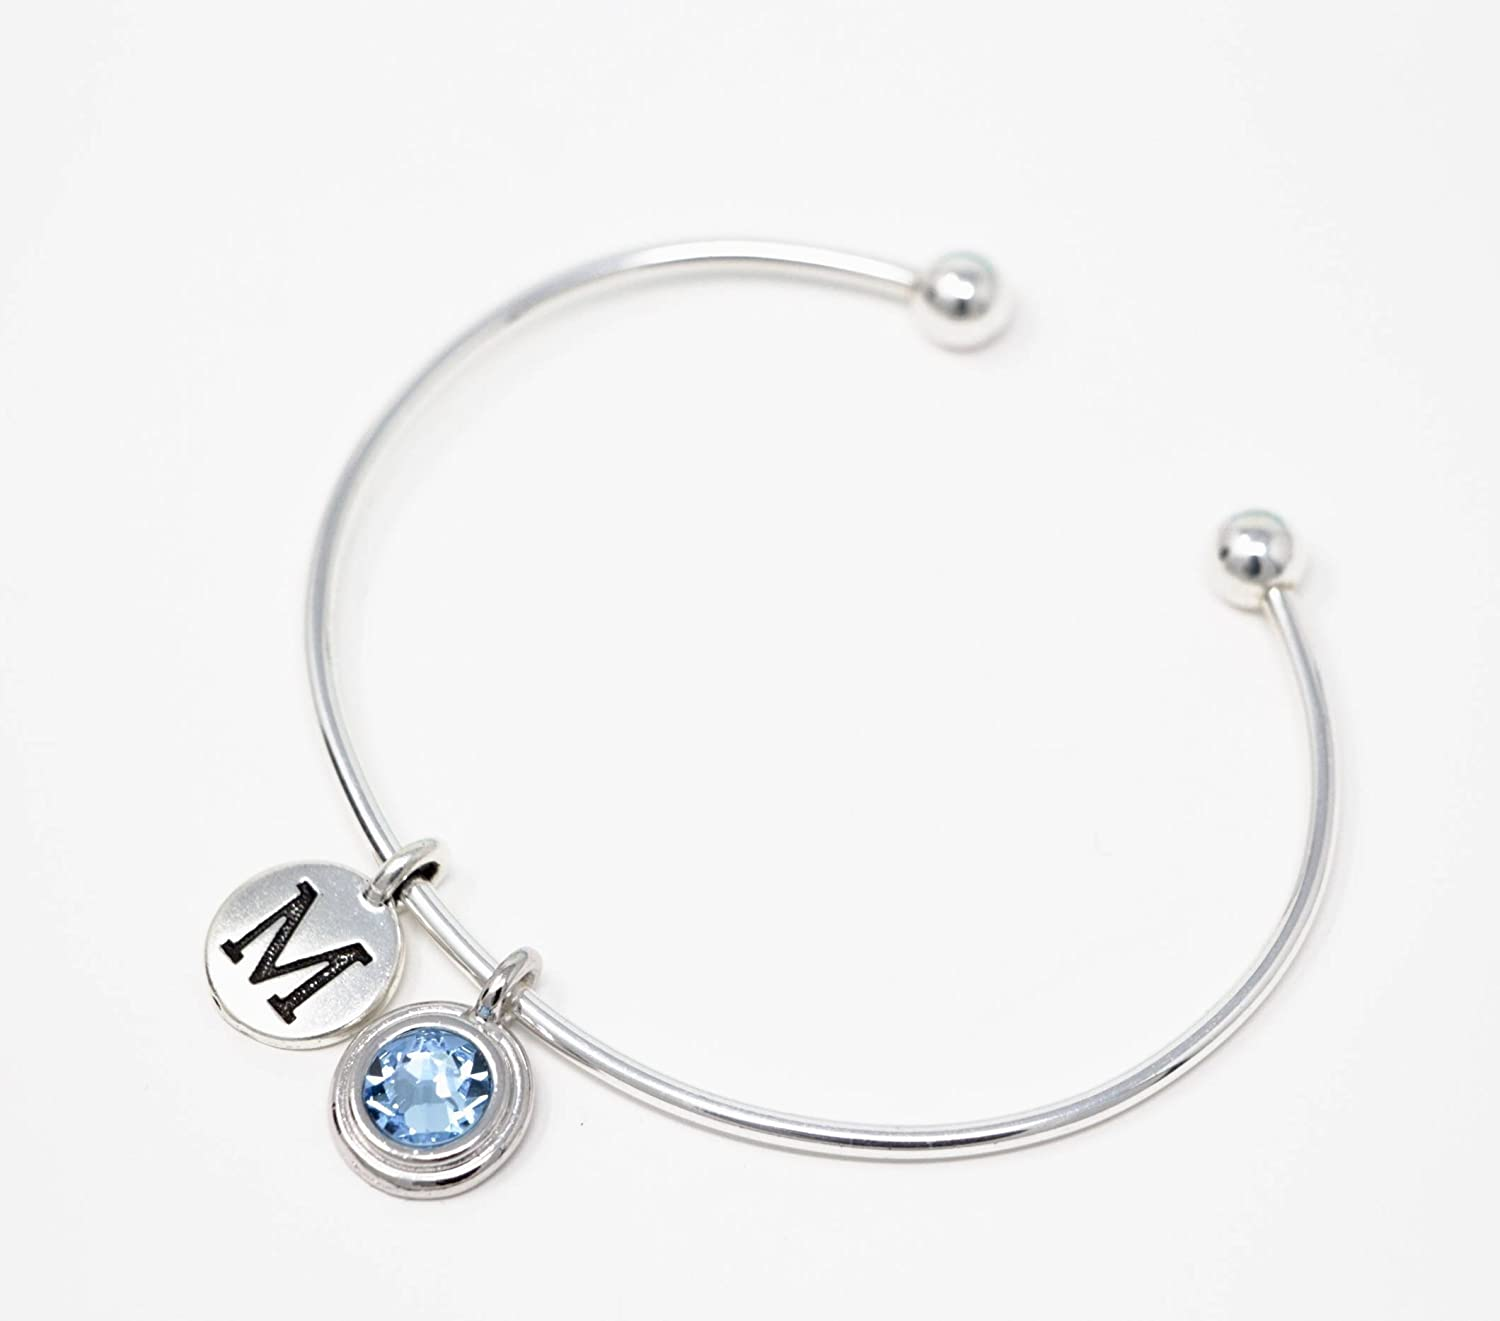 Sterling Silver Bangle Bracelet With Birthstone and Initial Charms